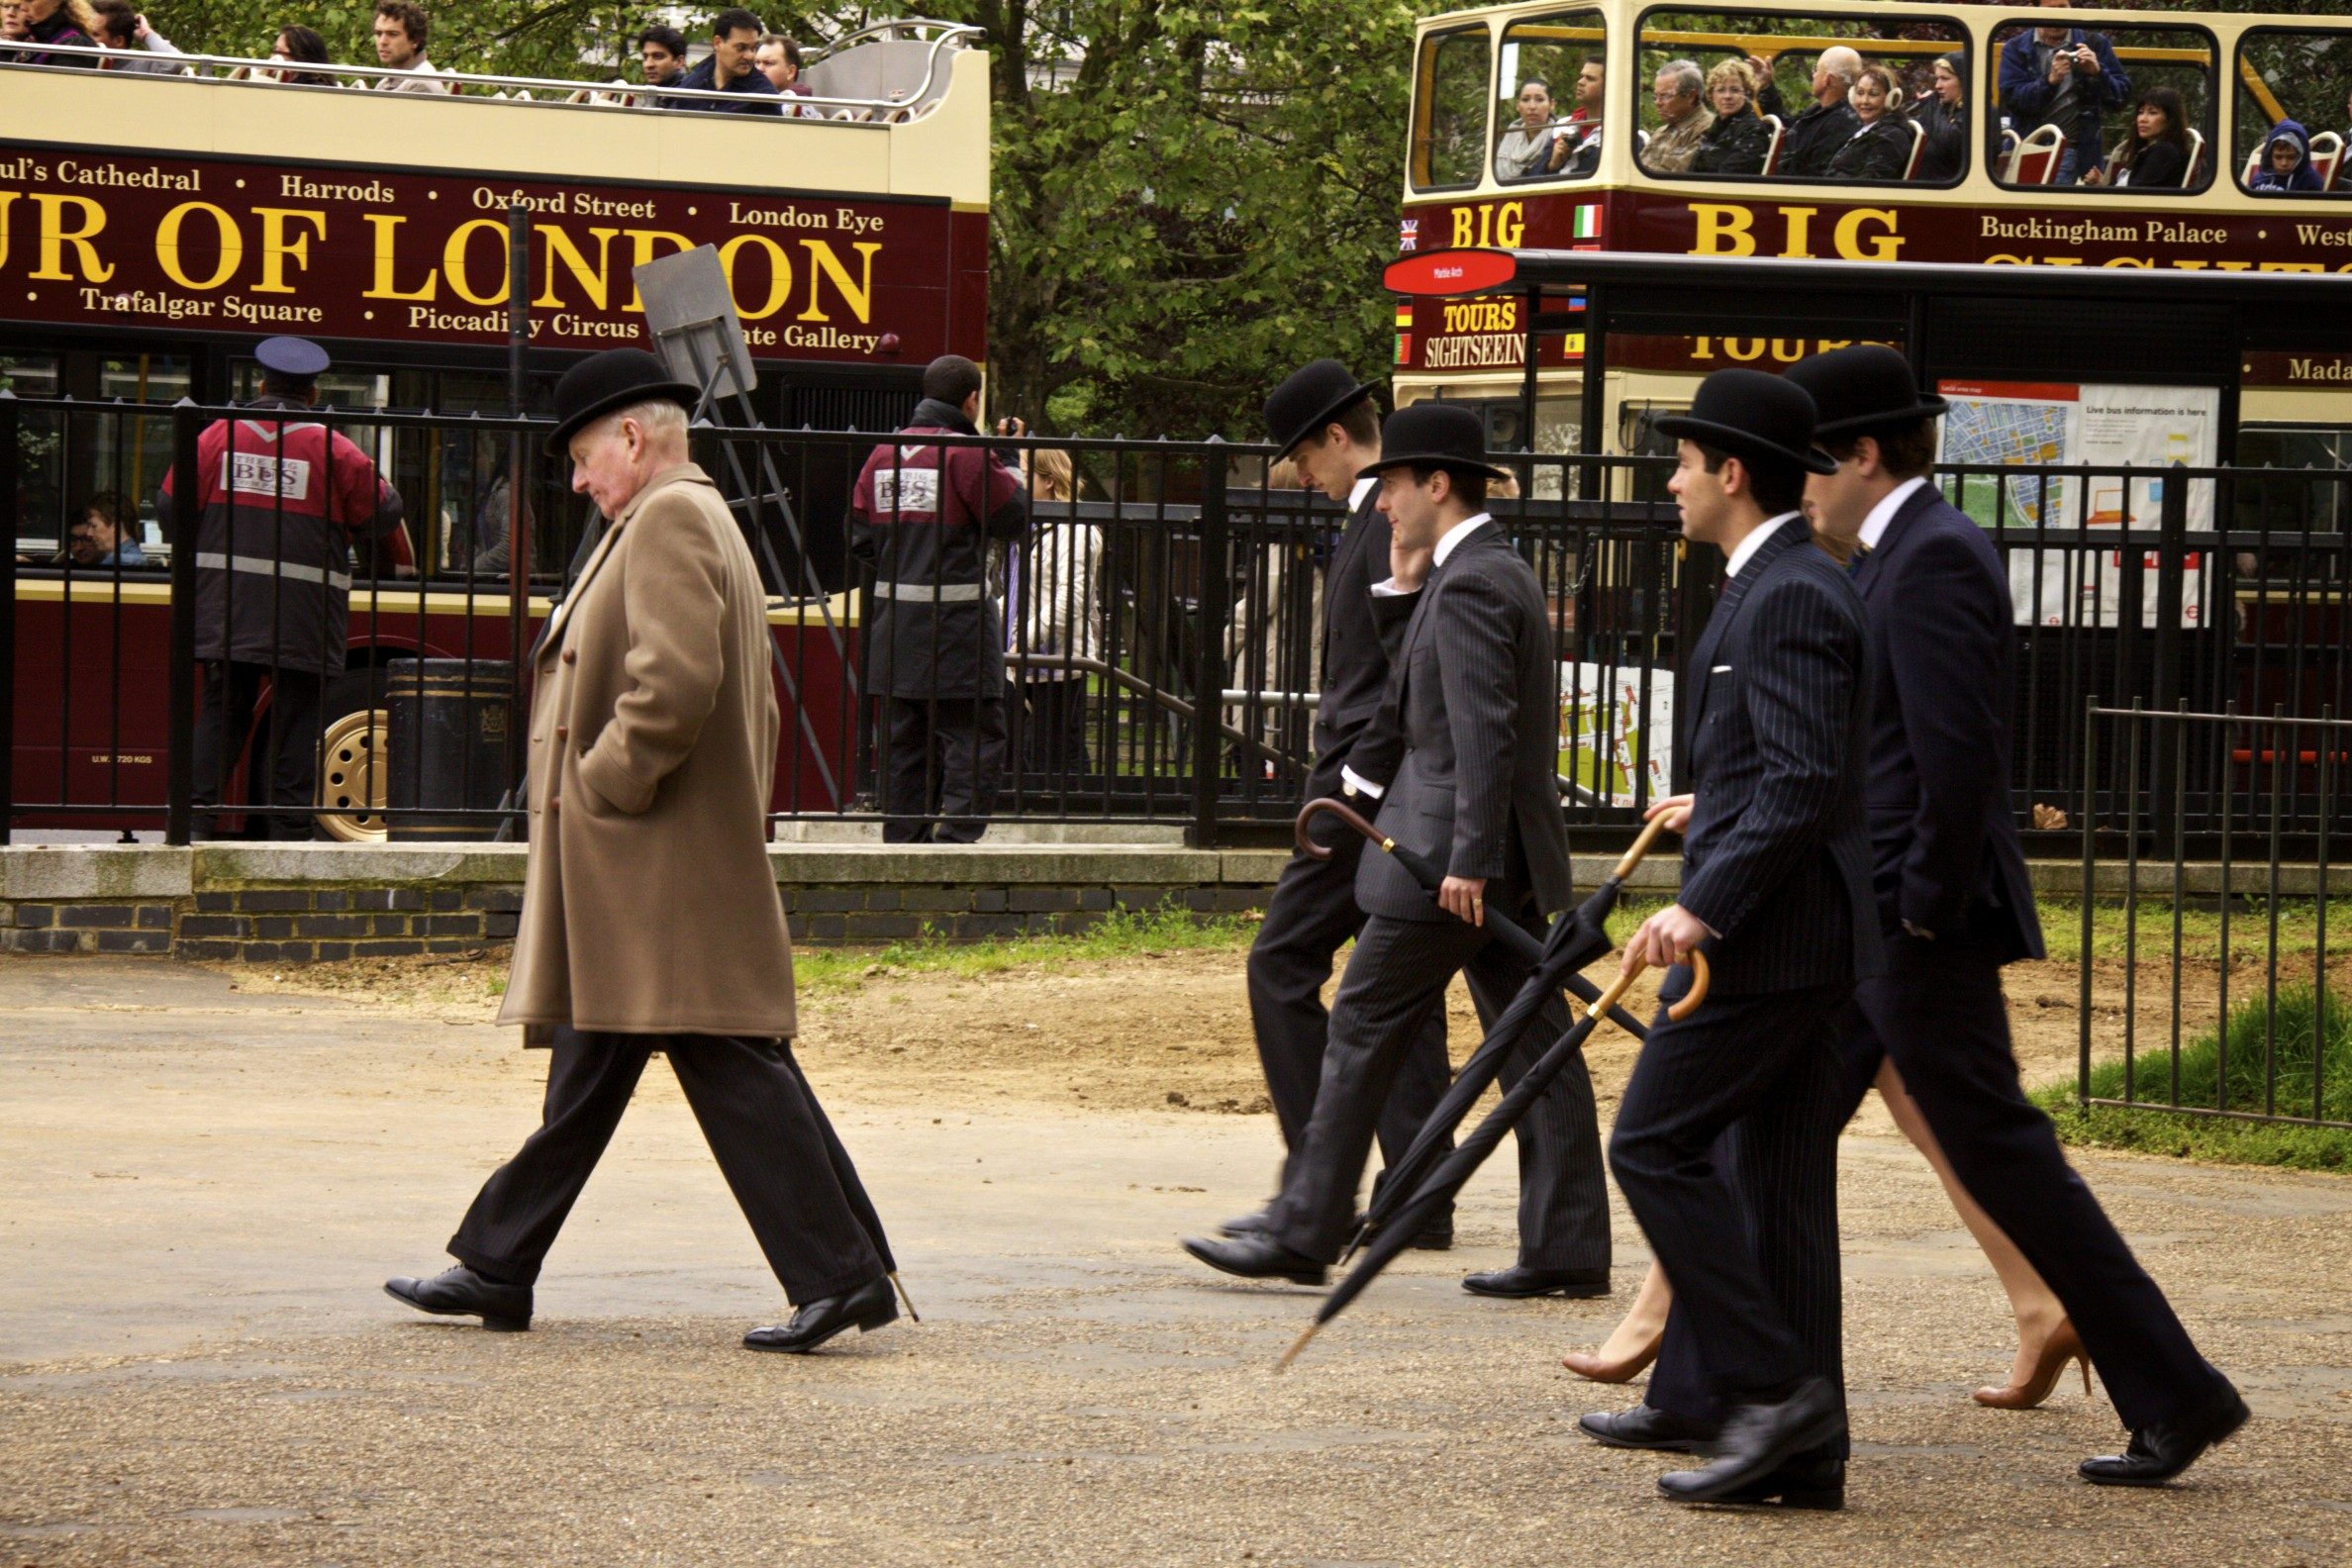 A group of men in pin stripe suits and bowler hats follow an older man in a crombie and bowler hat through Hyde Park in London